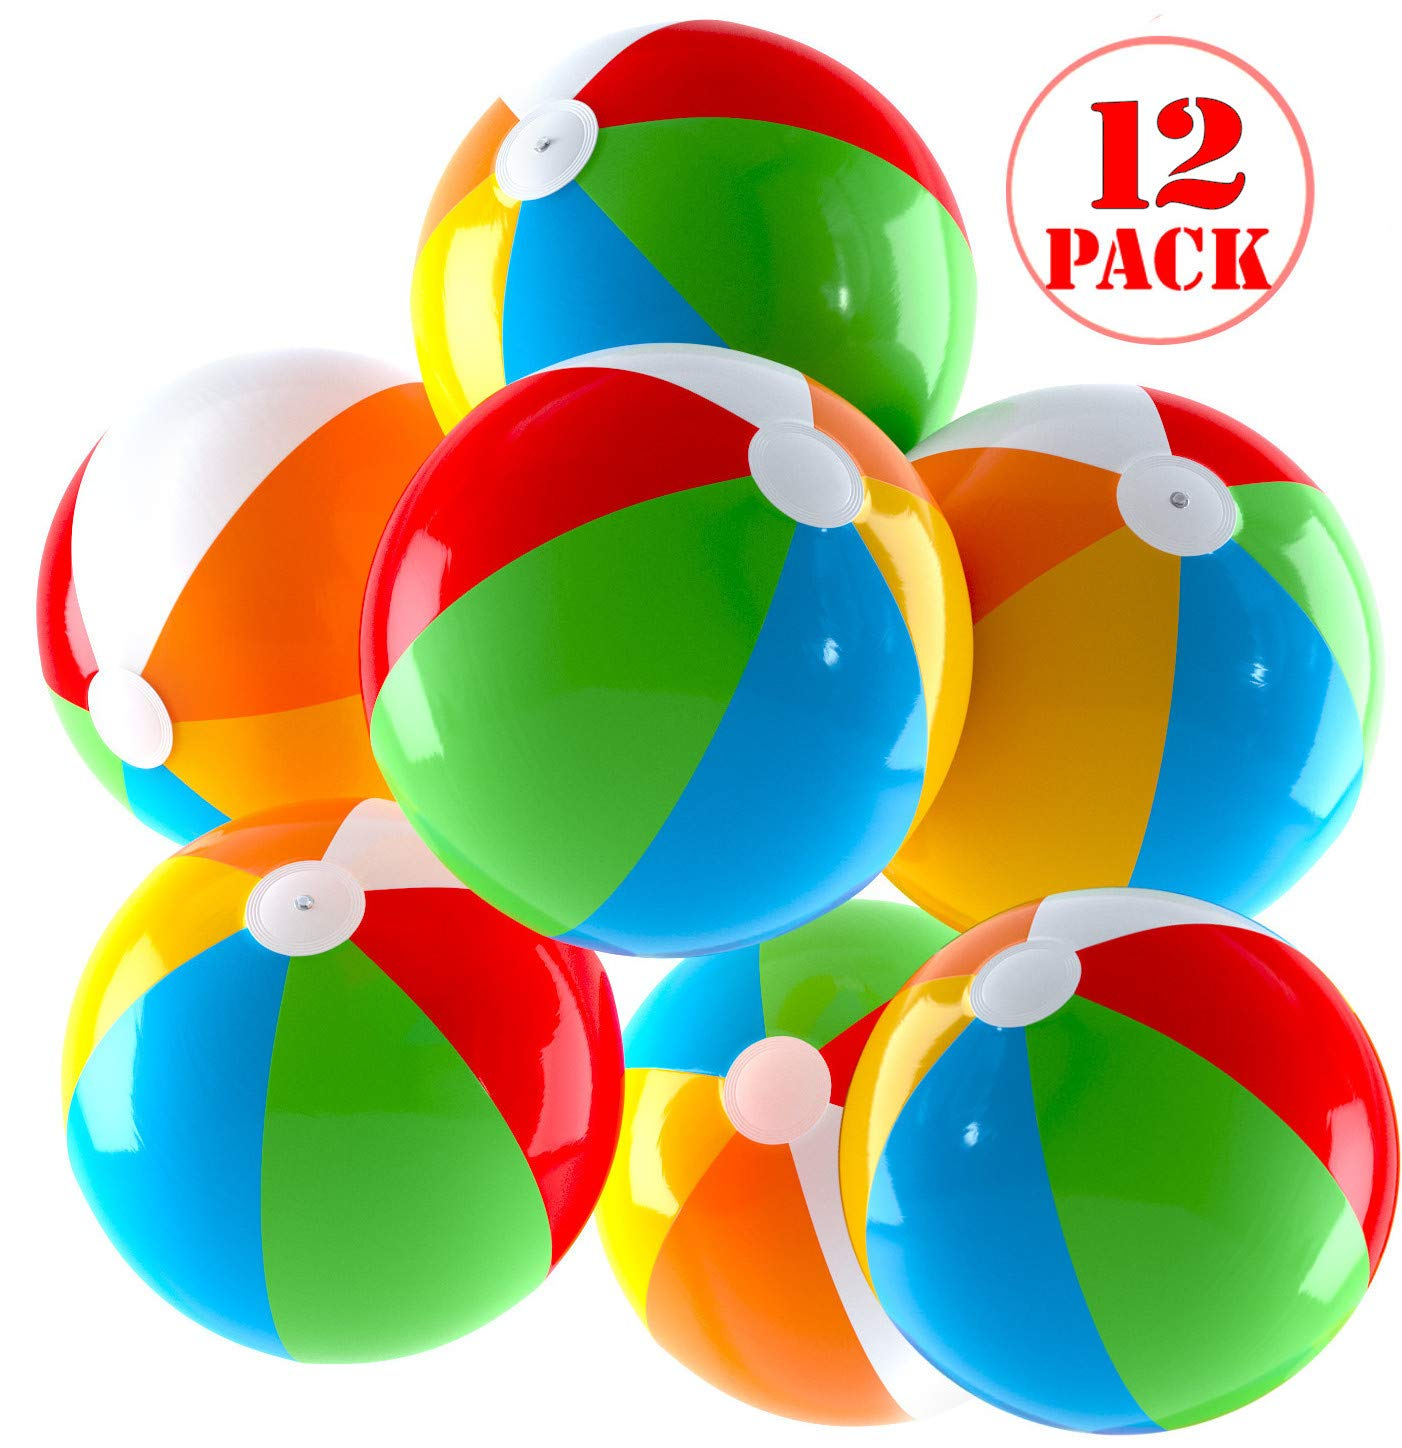 Top Race Inflatable Beach Balls Jumbo 24 inch Pool Balls, Beach Summer Parties, and Gifts | 12 Pack Blow up Rainbow Color Beach Ball (12 Balls) by Top Race